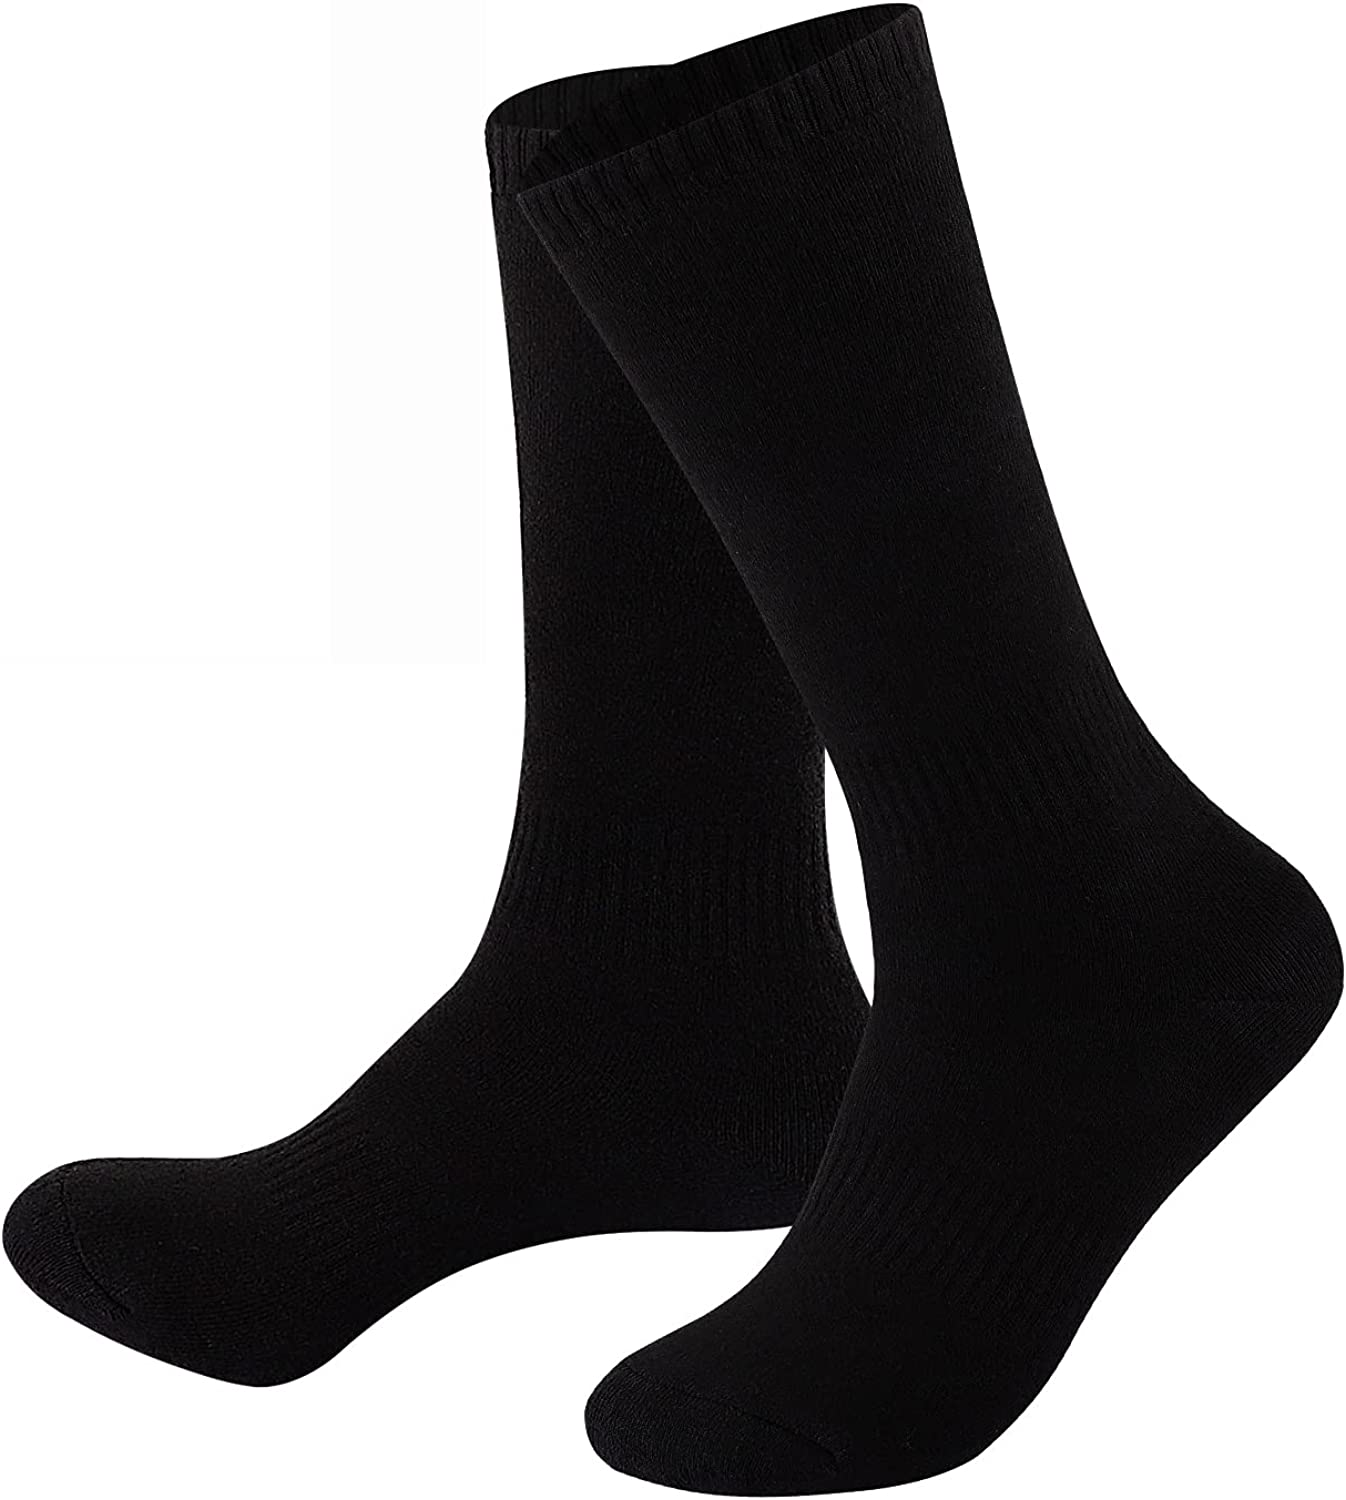 Thermal Socks Outdoor Winter Thick Co Unisex Max 89% OFF Cotton Seasonal Wrap Introduction Warm